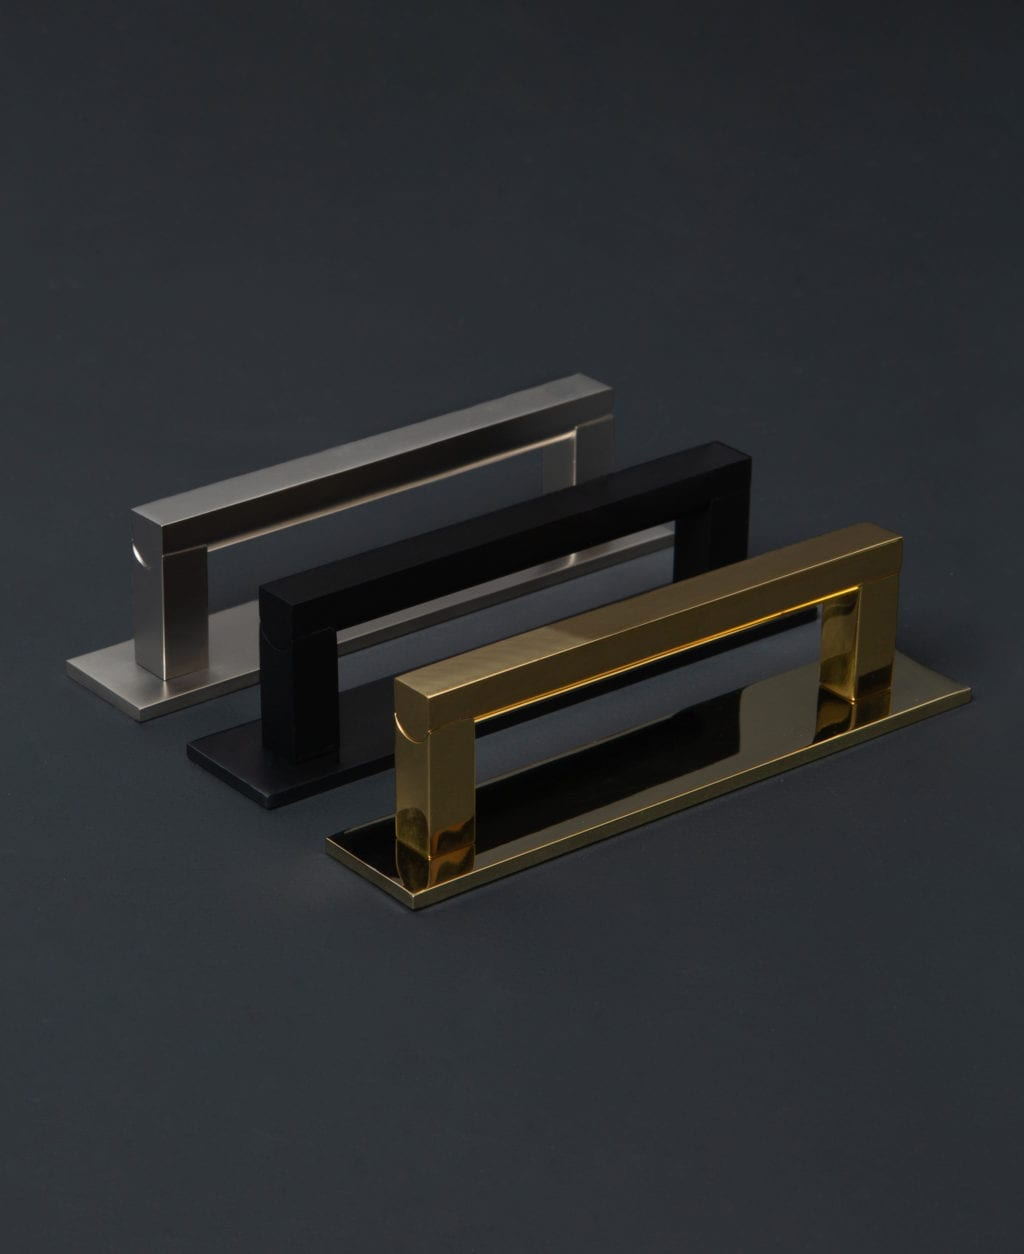 taipei metal handles with plate in black, silver & brass against black background